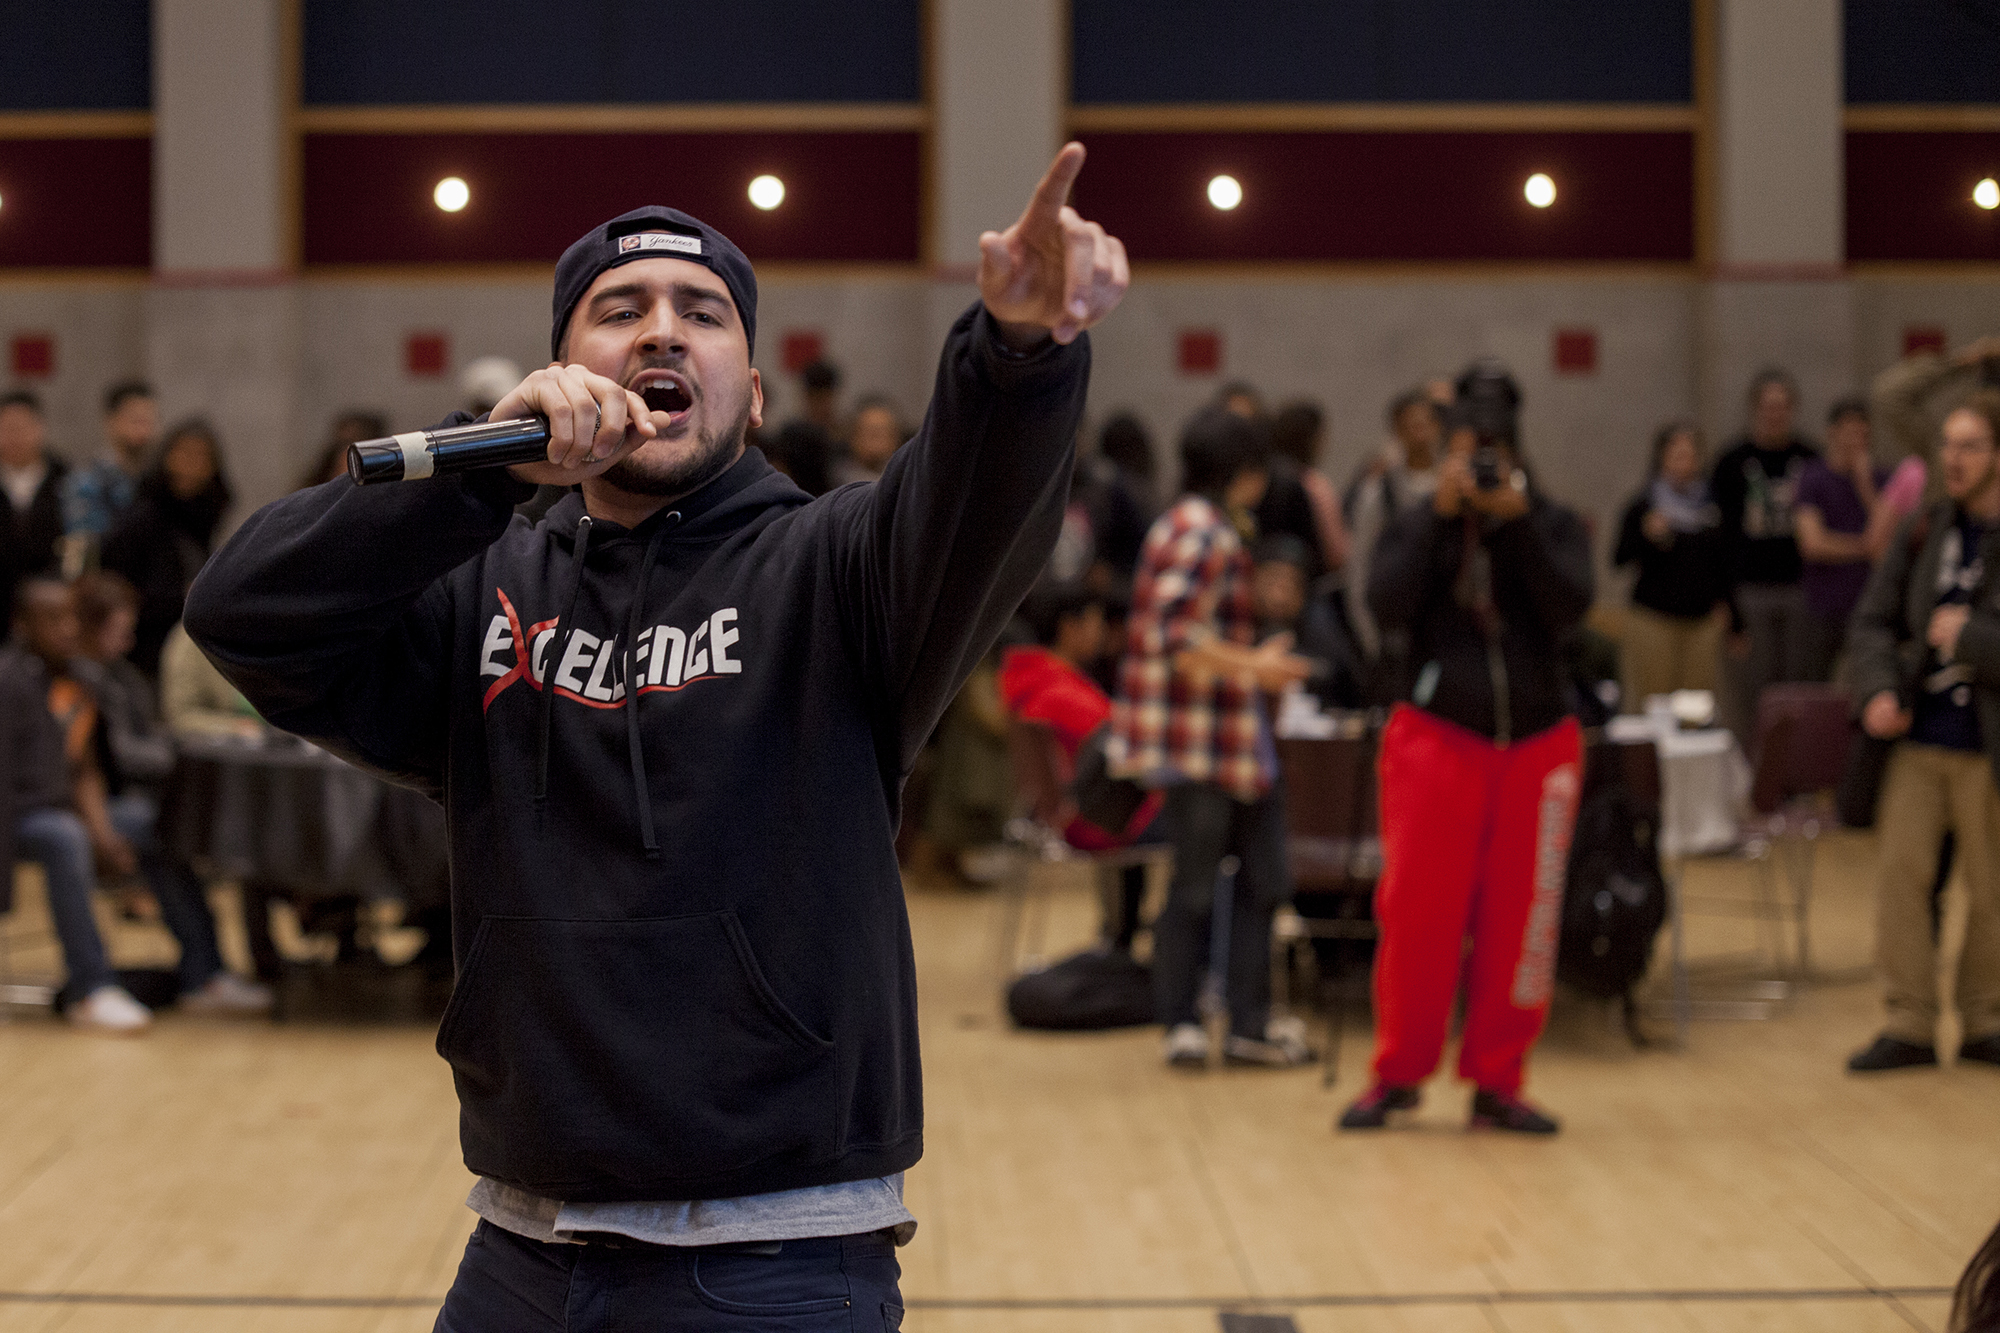 After Joel Polanco finished his act, USG officially announced the lineup of Cash Cash and Future for Brookfest 2016. <em>ERIC SCHMID/THE STATESMAN</em>